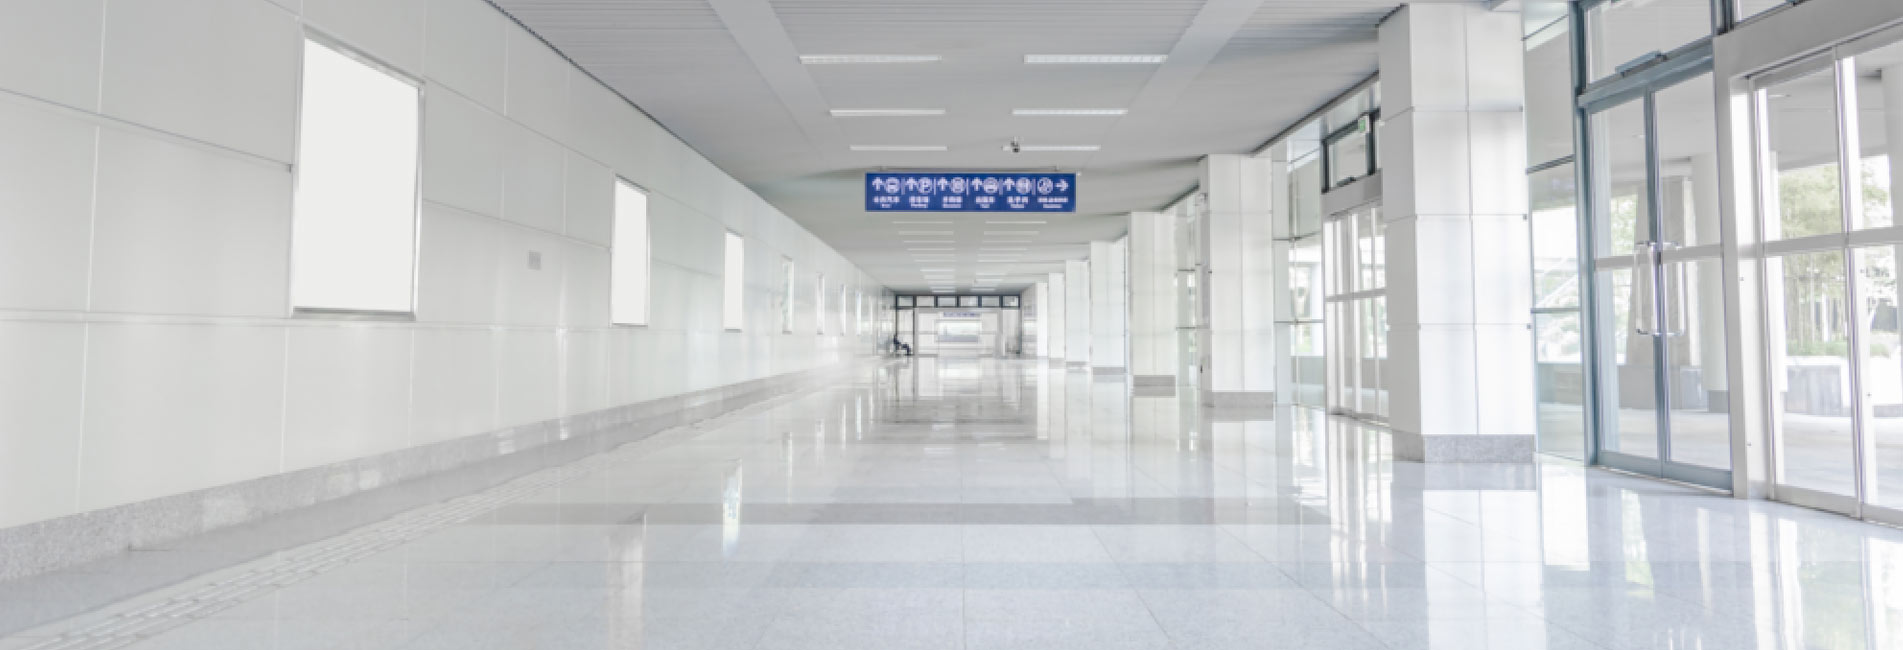 Commercial Epoxy Flooring Surry Hills, Floor Covering Bondi, Epoxy Flooring Parramatta